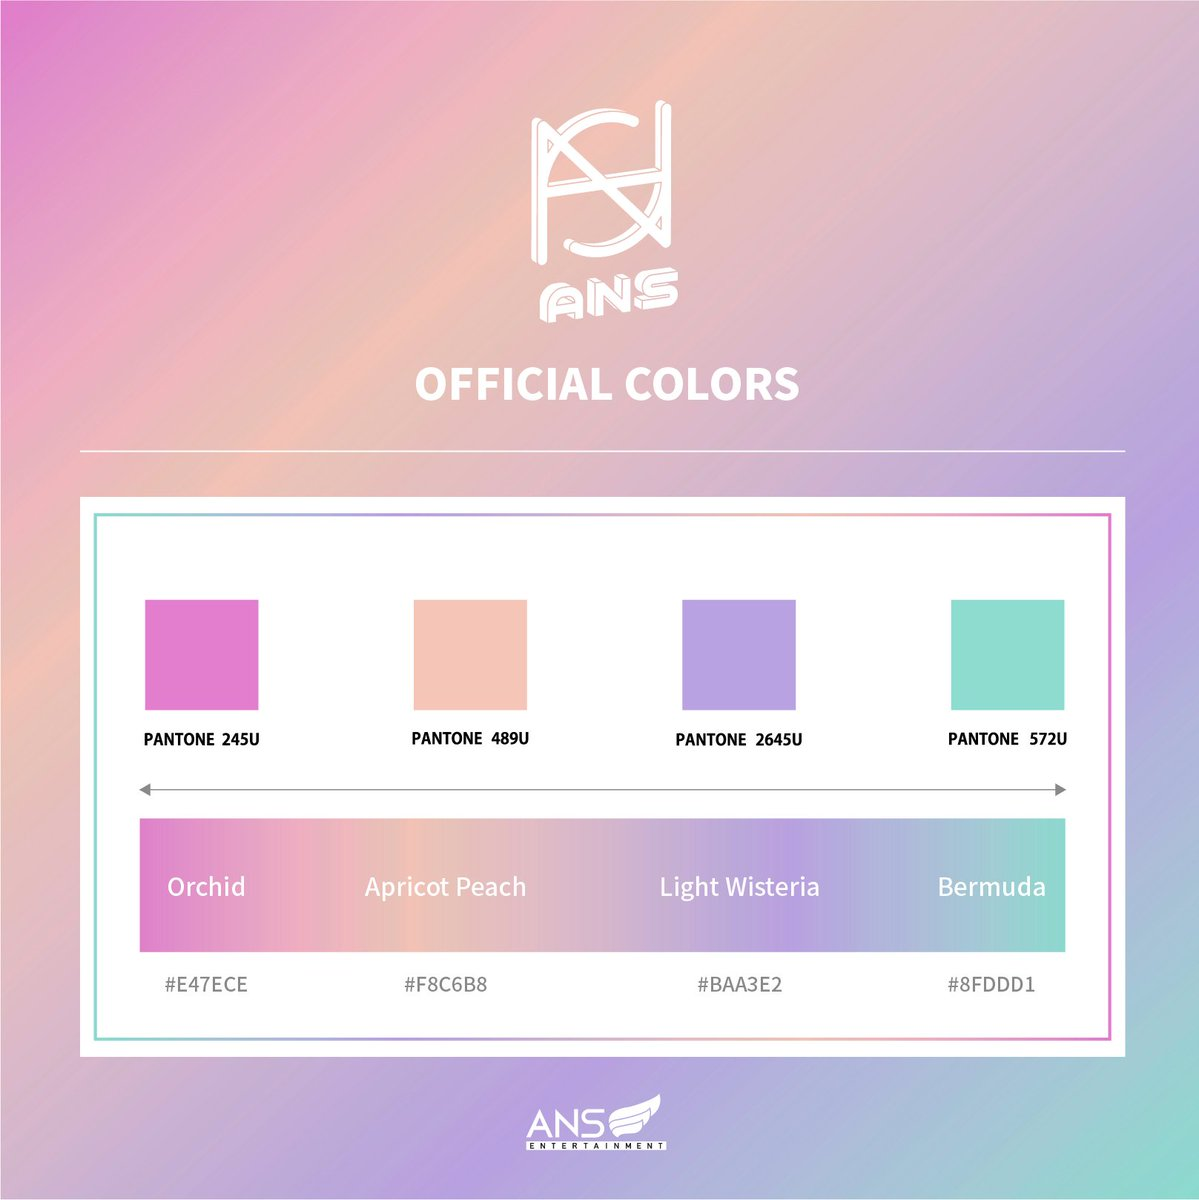 RT @ANS_official_: ANS Official Colors & Logo  #ANS #AngelNSoul https://t.co/97ICAkTacx